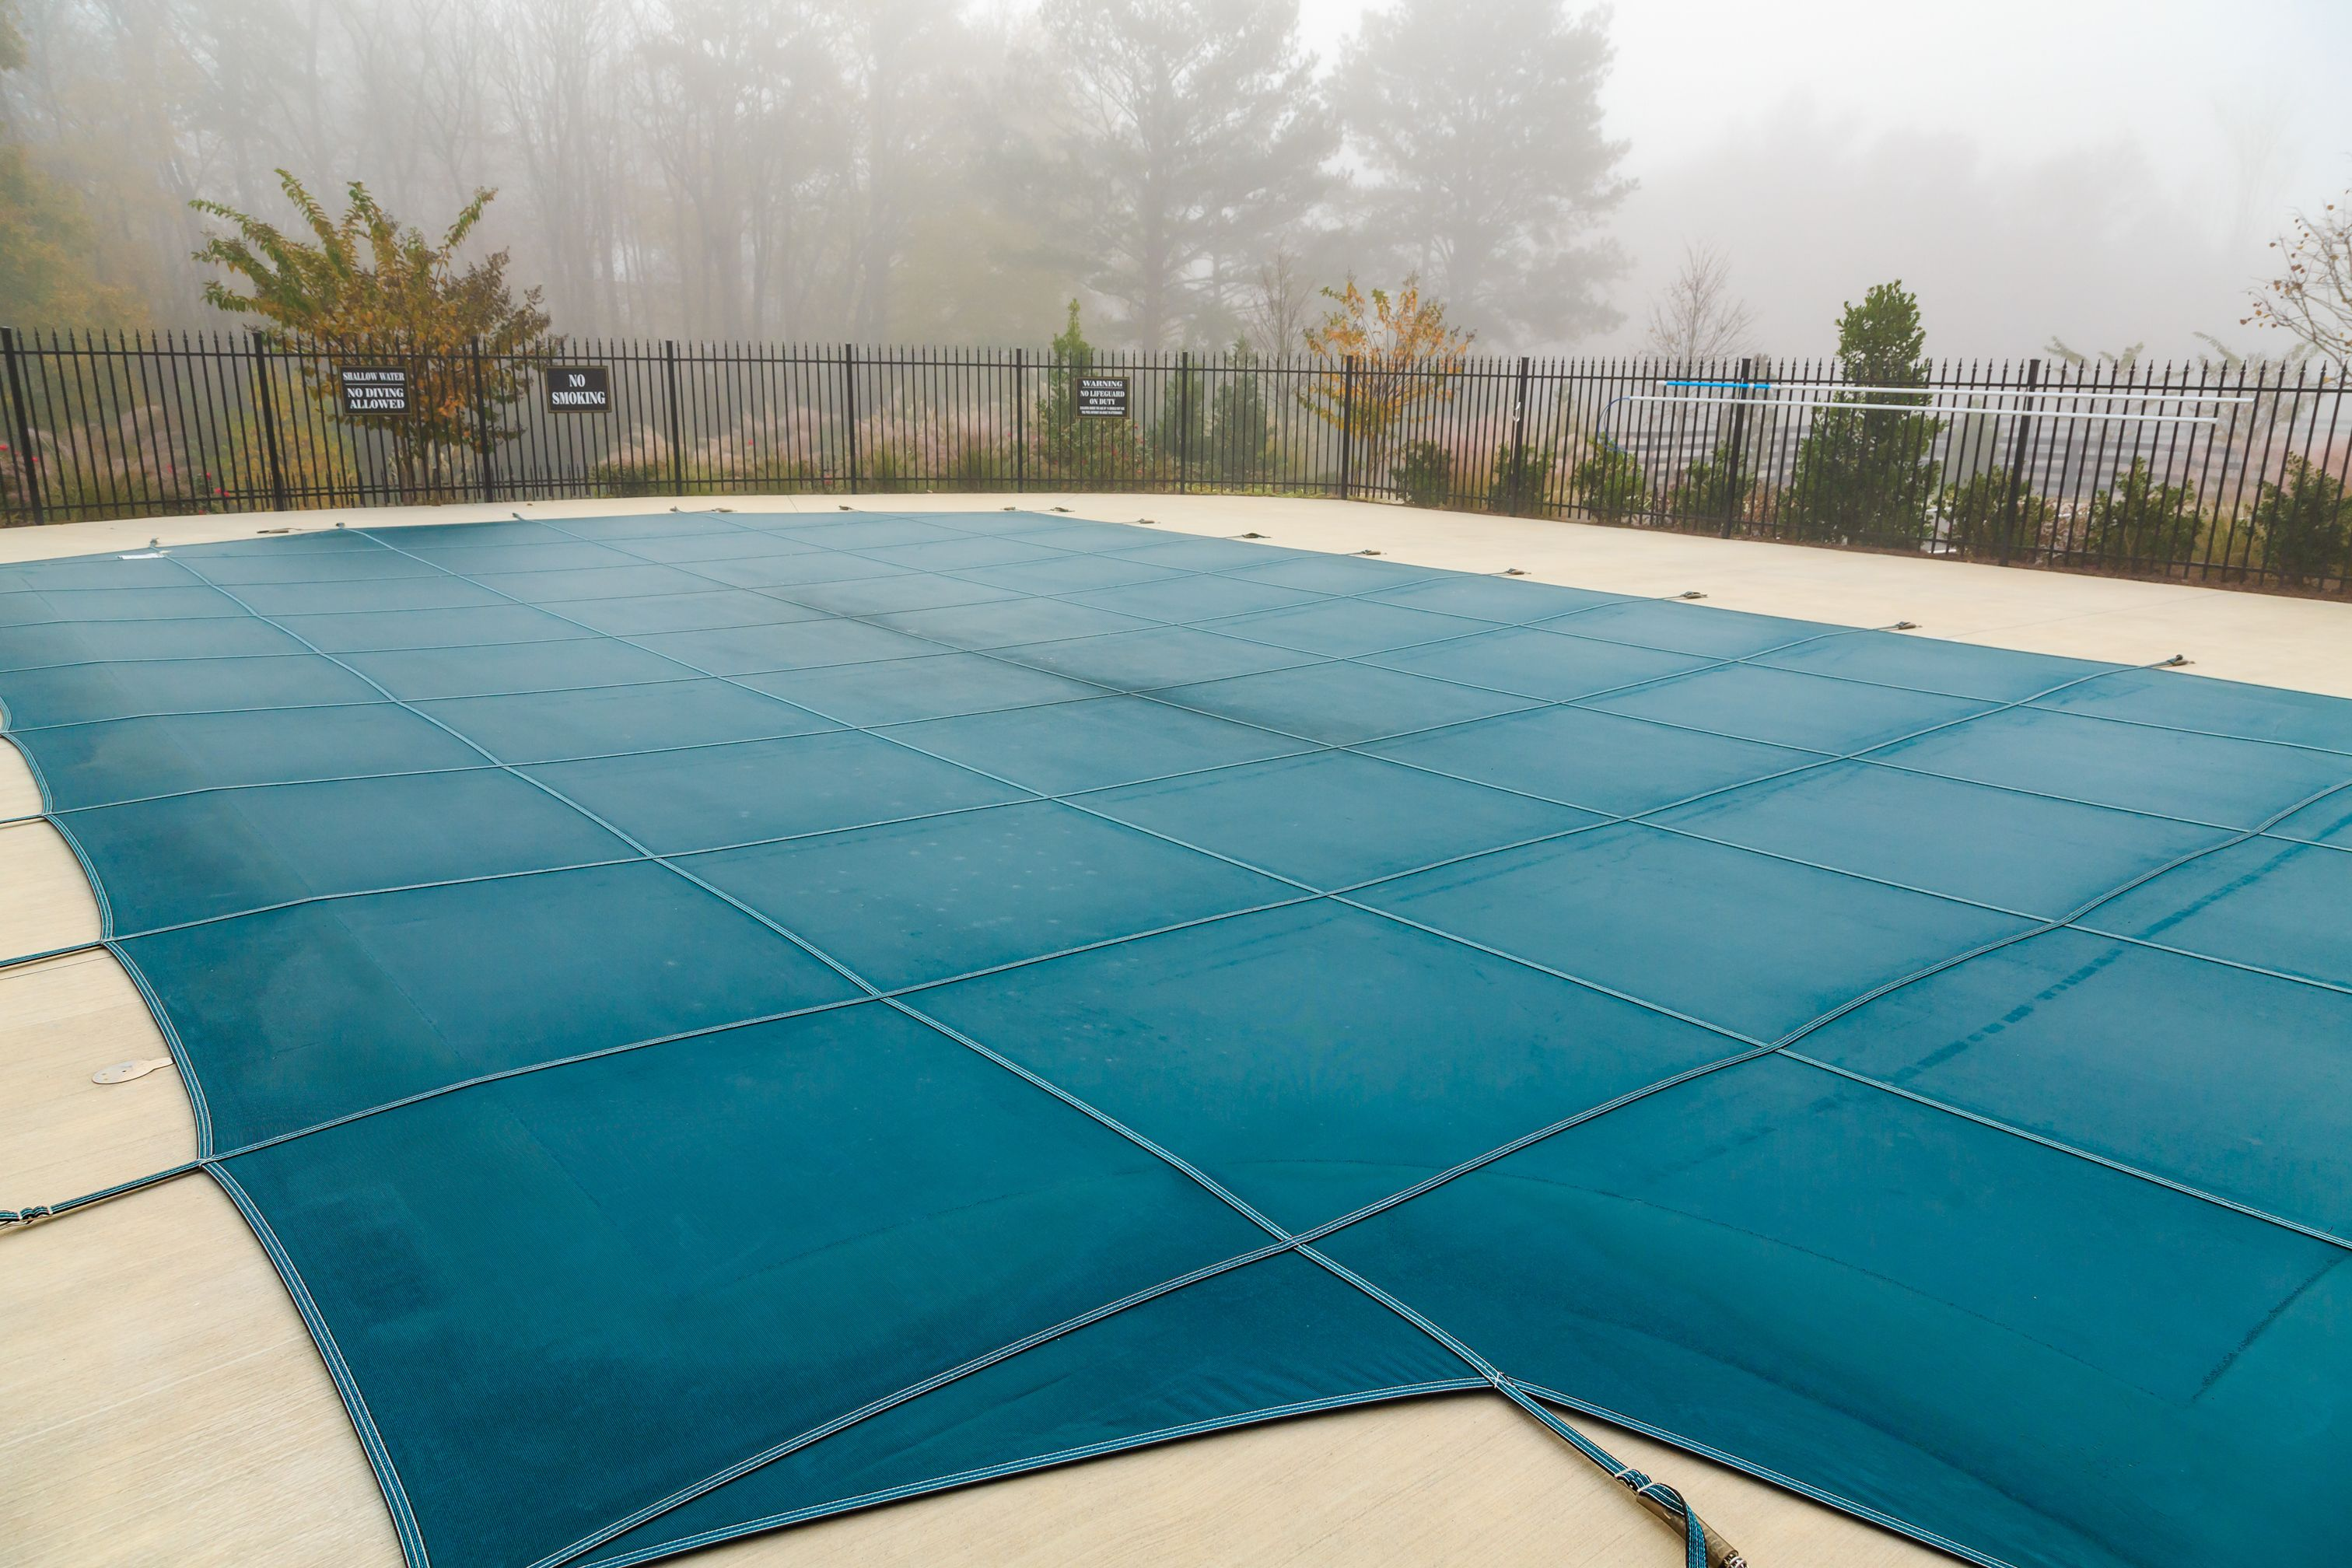 Pool Maintenance | How to Winterize a Pool